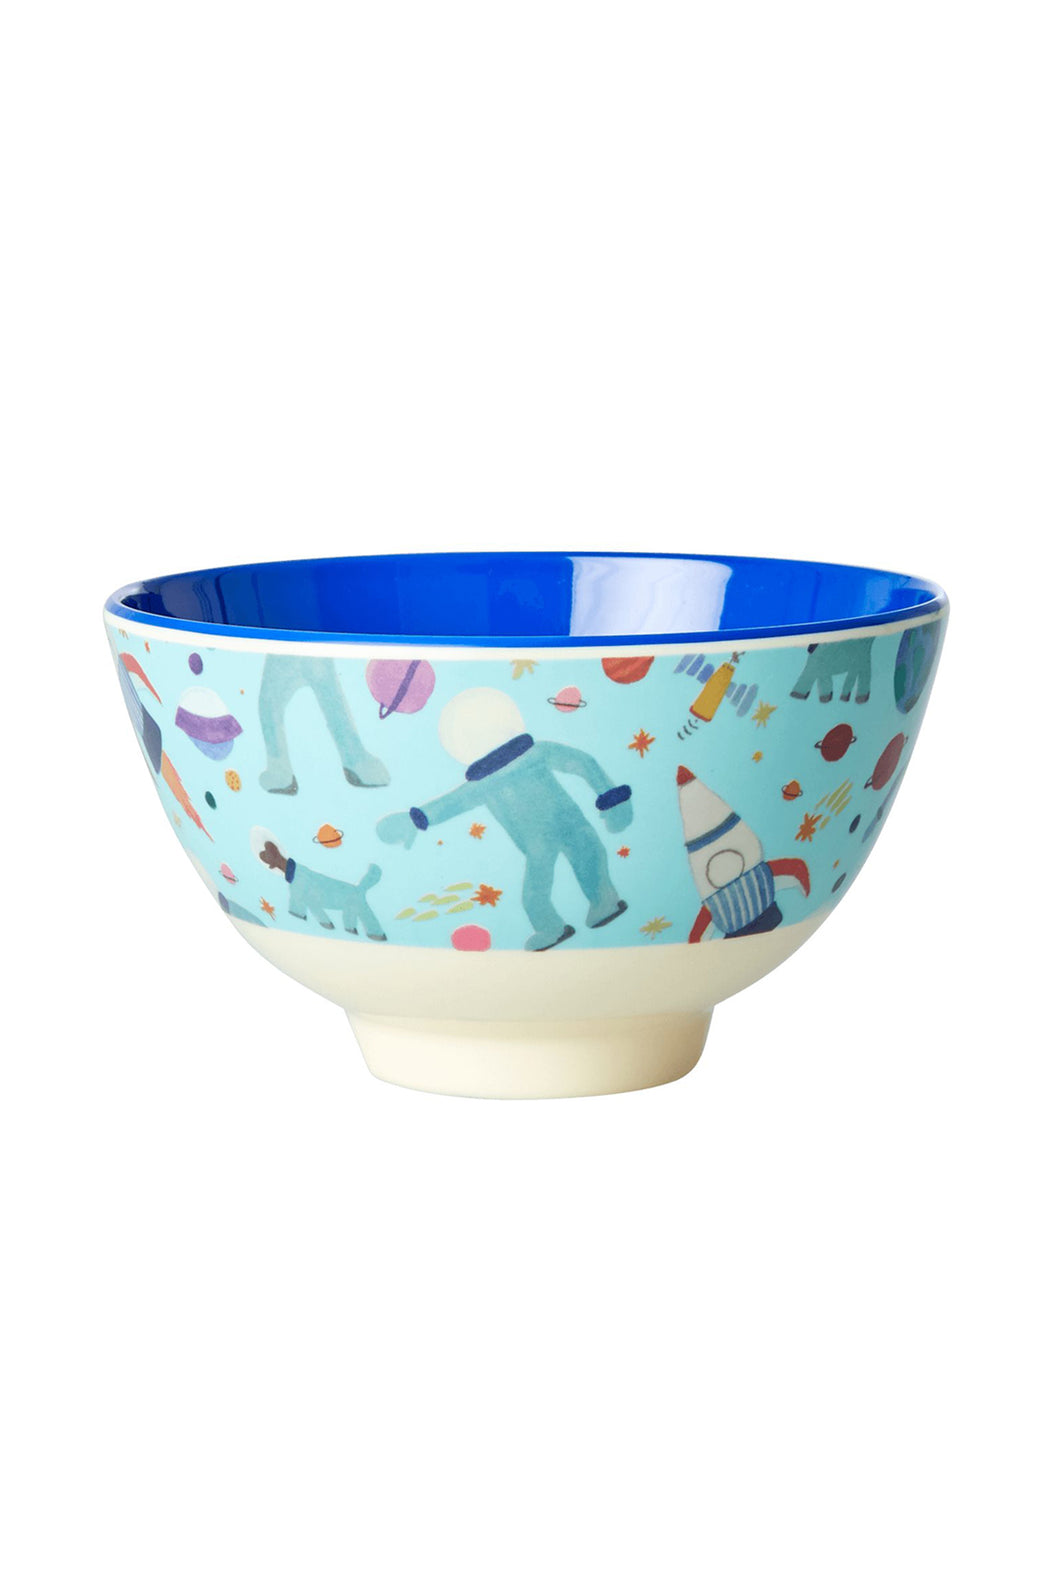 Space Two Tone Melamine Kids Small Bowl